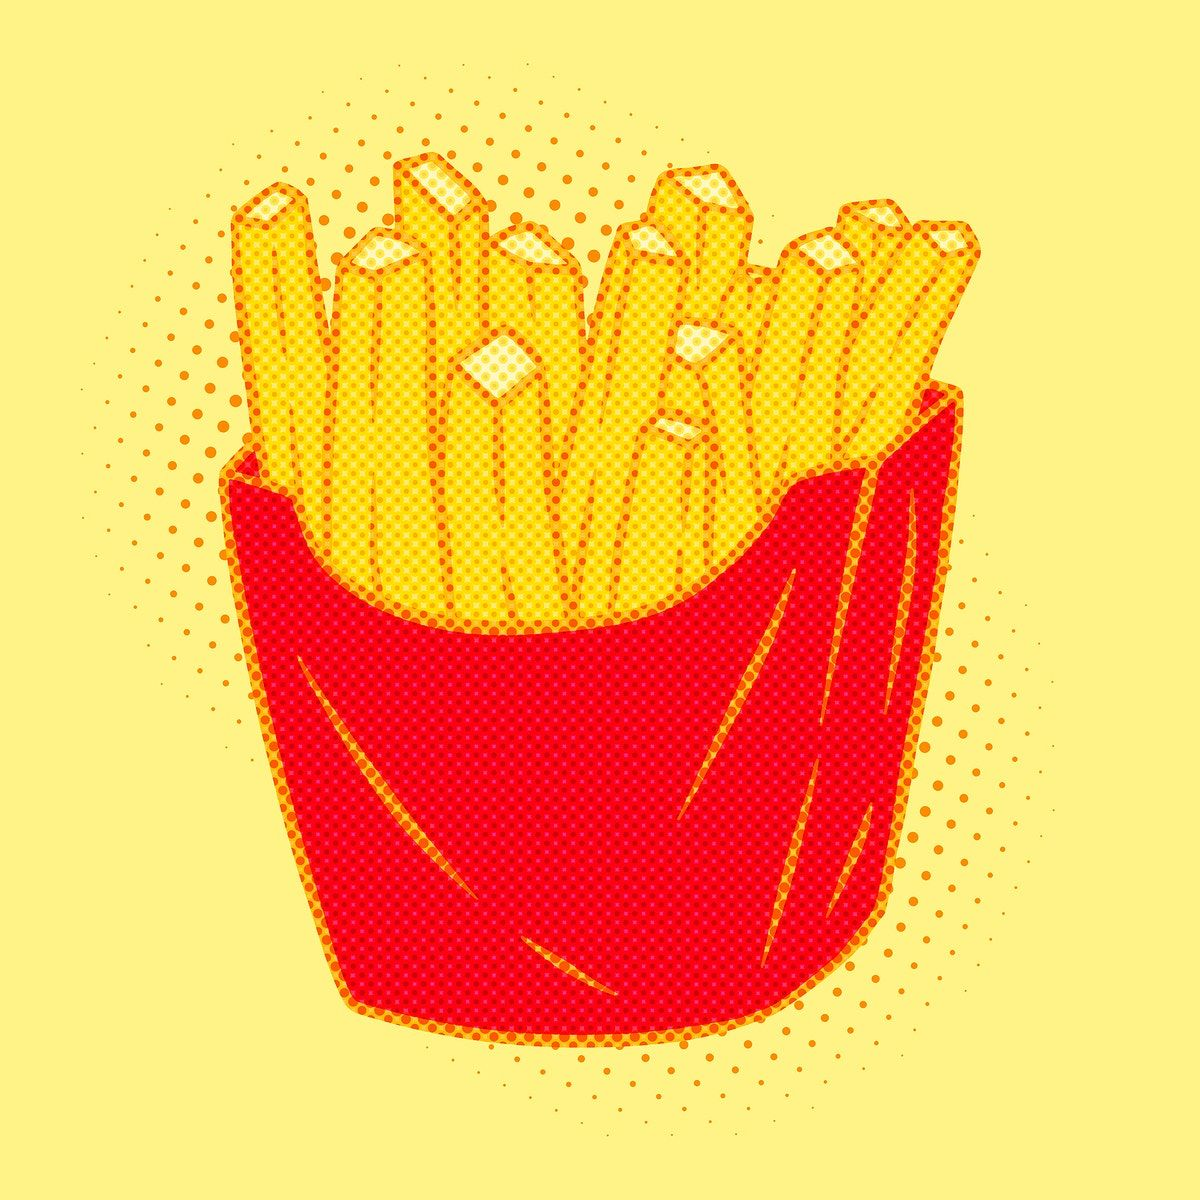 Pop art style french fries sticker overlay with halftone